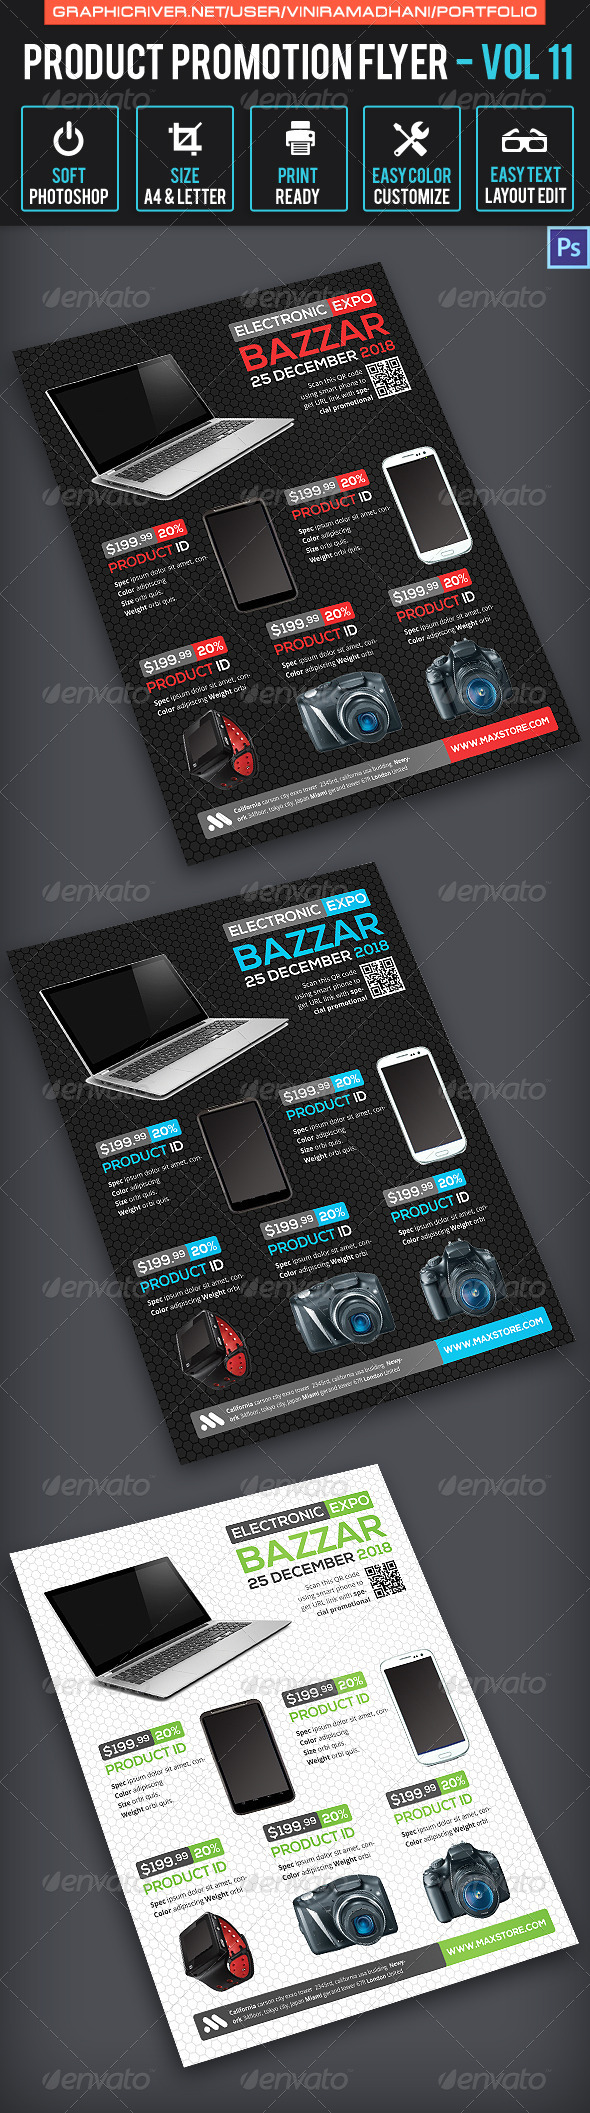 GraphicRiver Product Promotion Flyer Volume 11 7658099